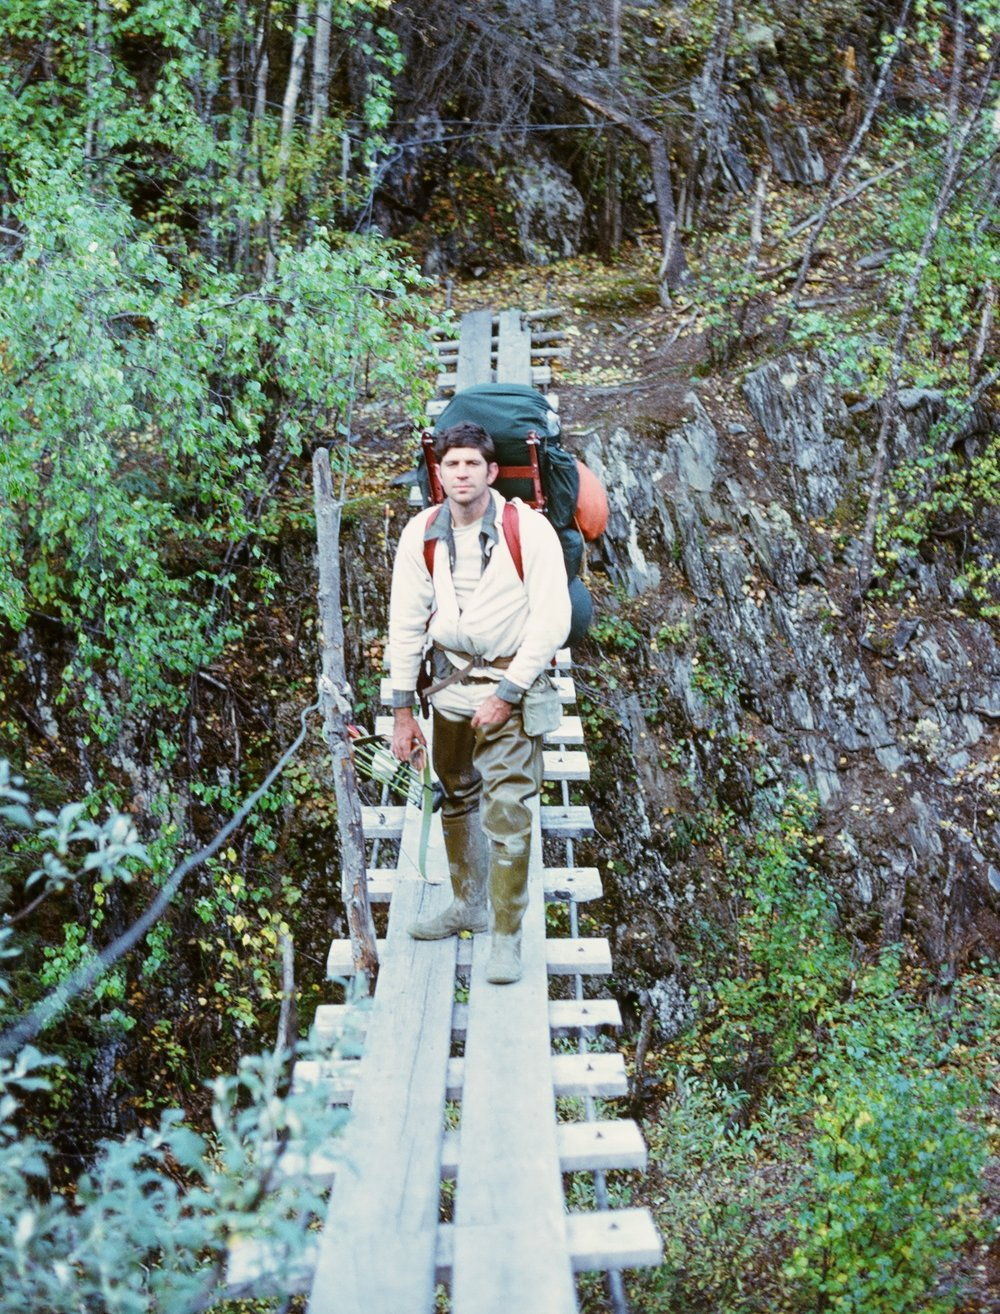 The swinging bridge that no one liked. It went over a 100 foot deep gorge with class 4 rapids.